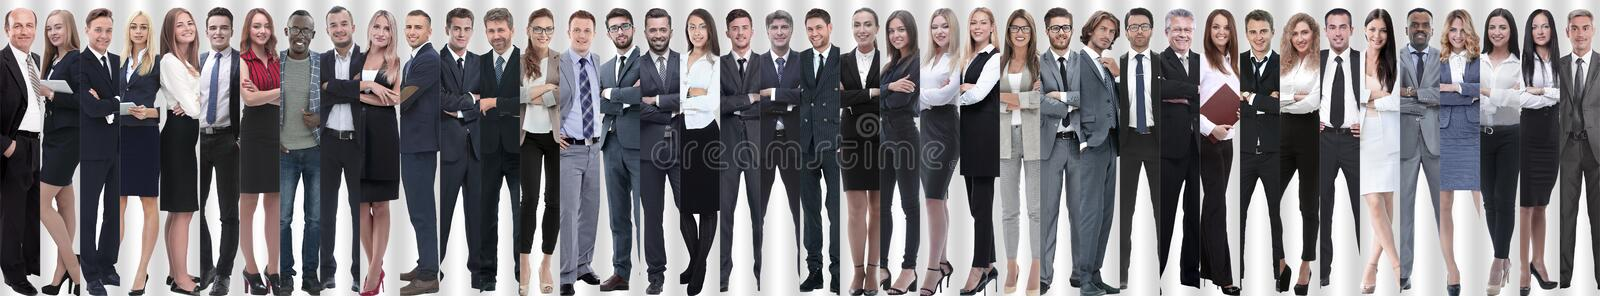 Panoramic collage of a large and successful business team. The concept of teamwork royalty free stock photo